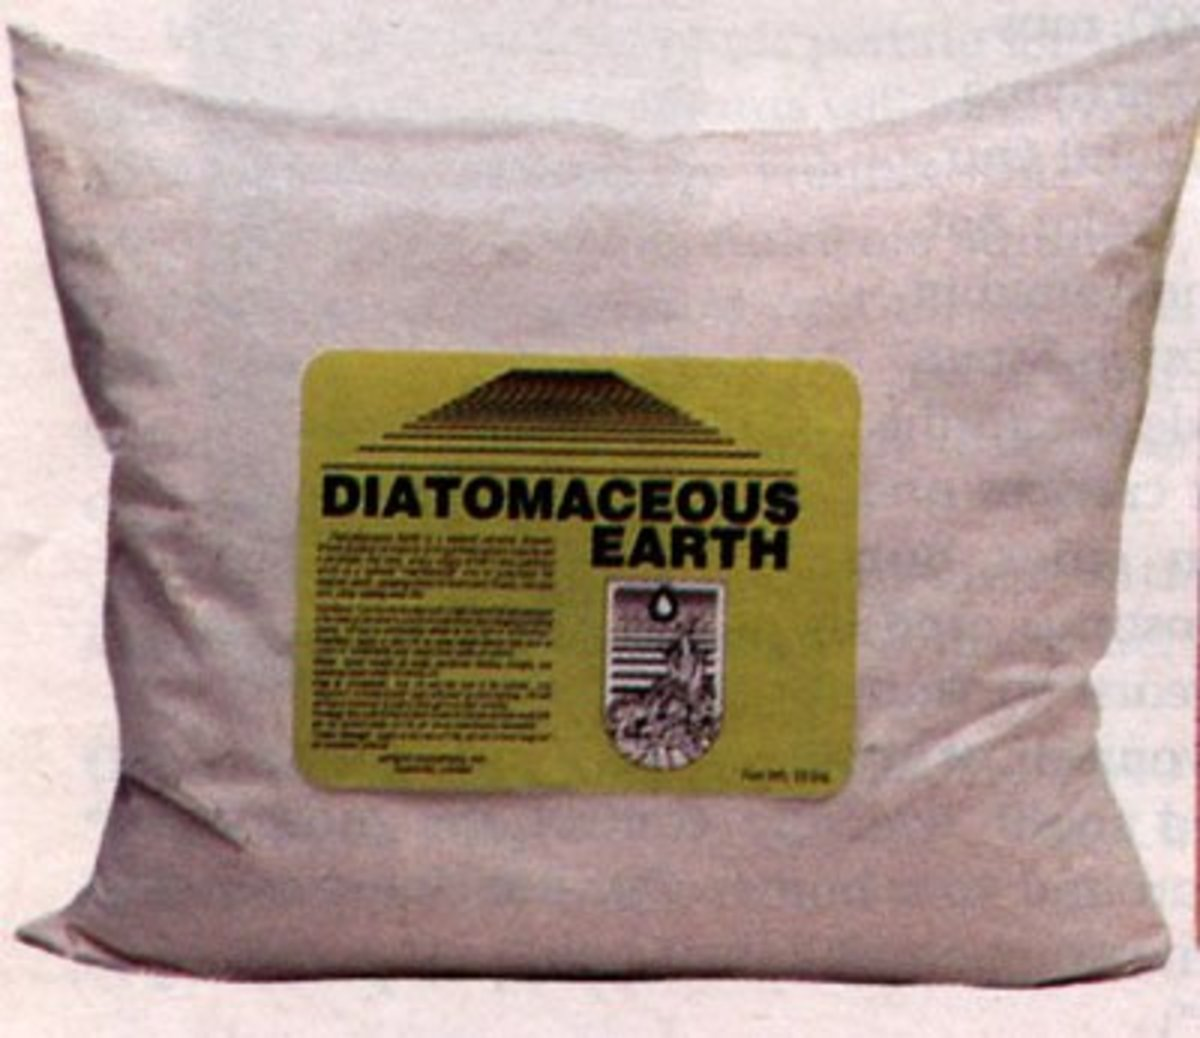 Diatomaceous earth is both cheap and effective, killing not only fleas but a veritable host of parasites and pests.